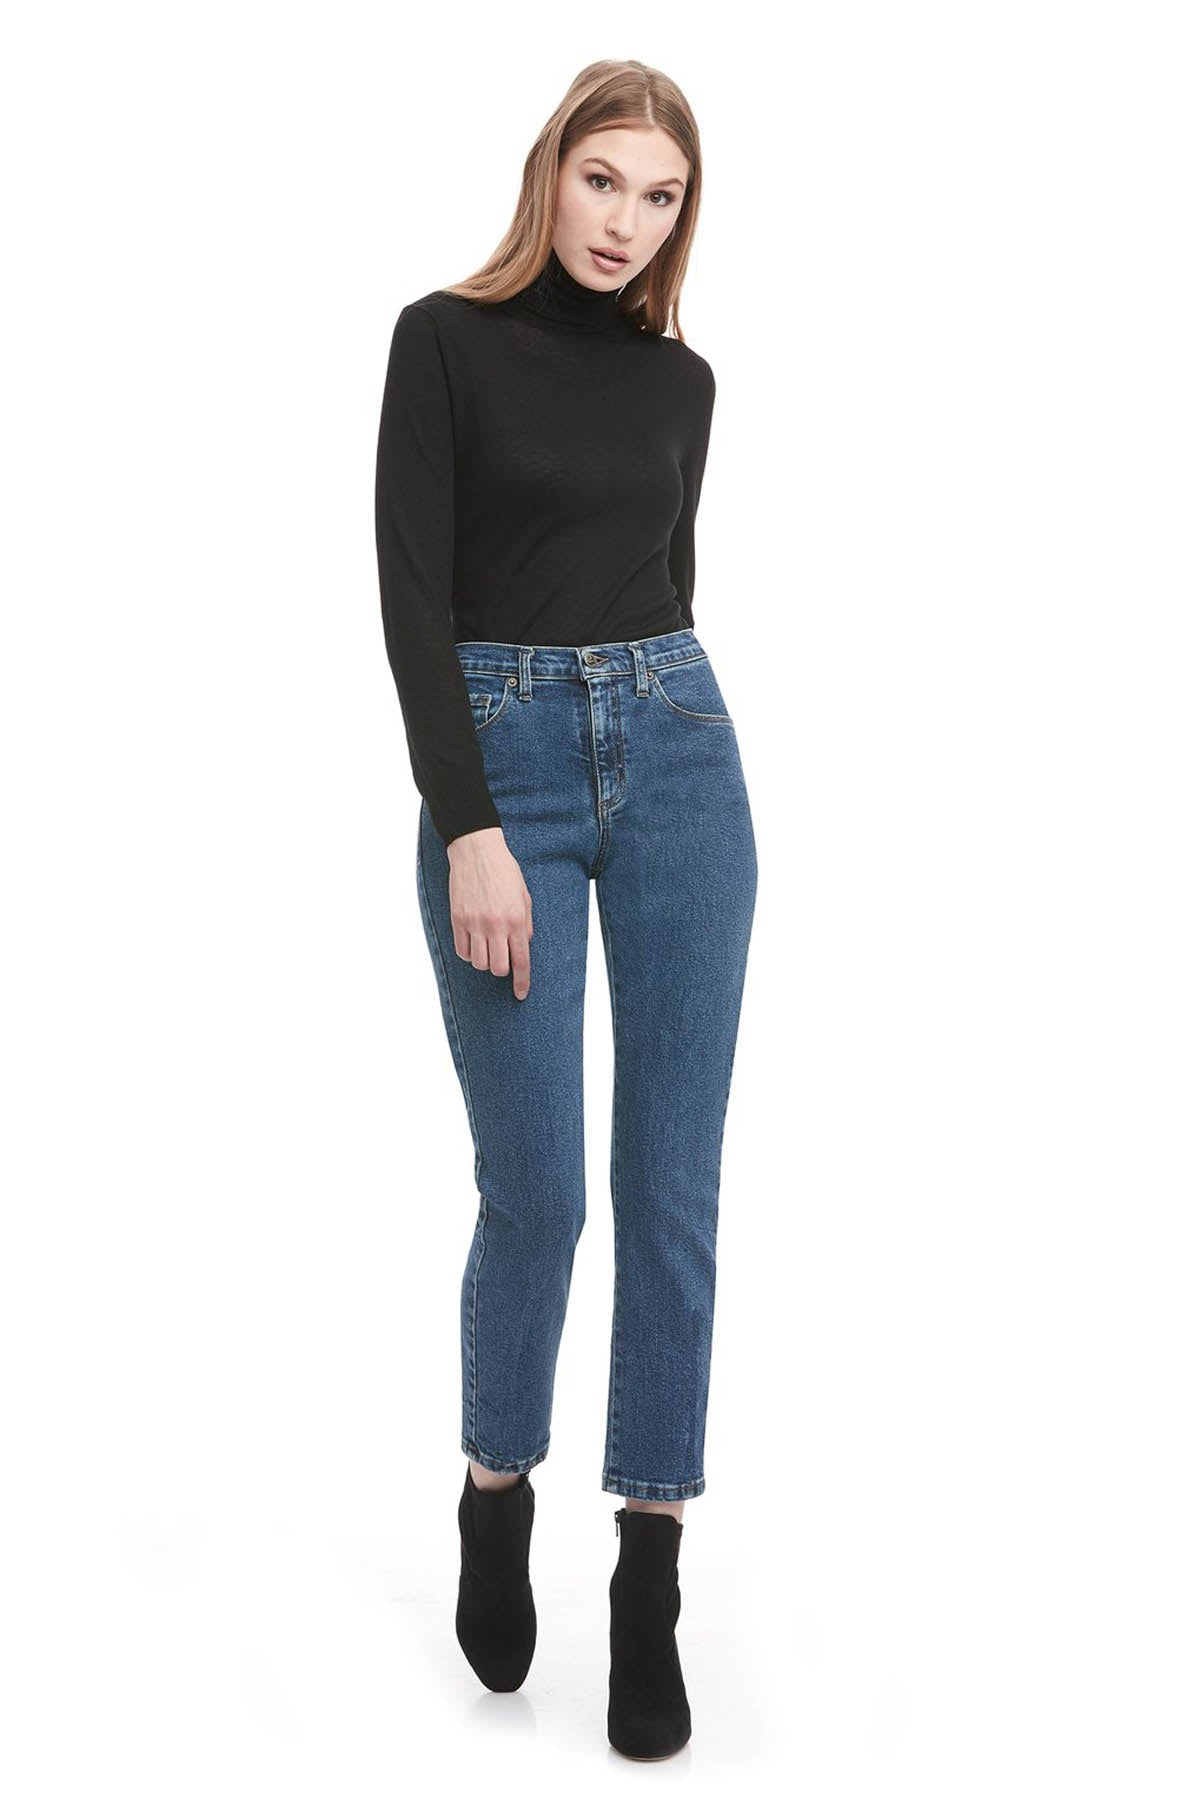 EMILY High Rise Slim Yoga Jean, Barbuda, high rise, 28 inch inseam, slim fit, 90s style, sizes 24-34, made in Canada